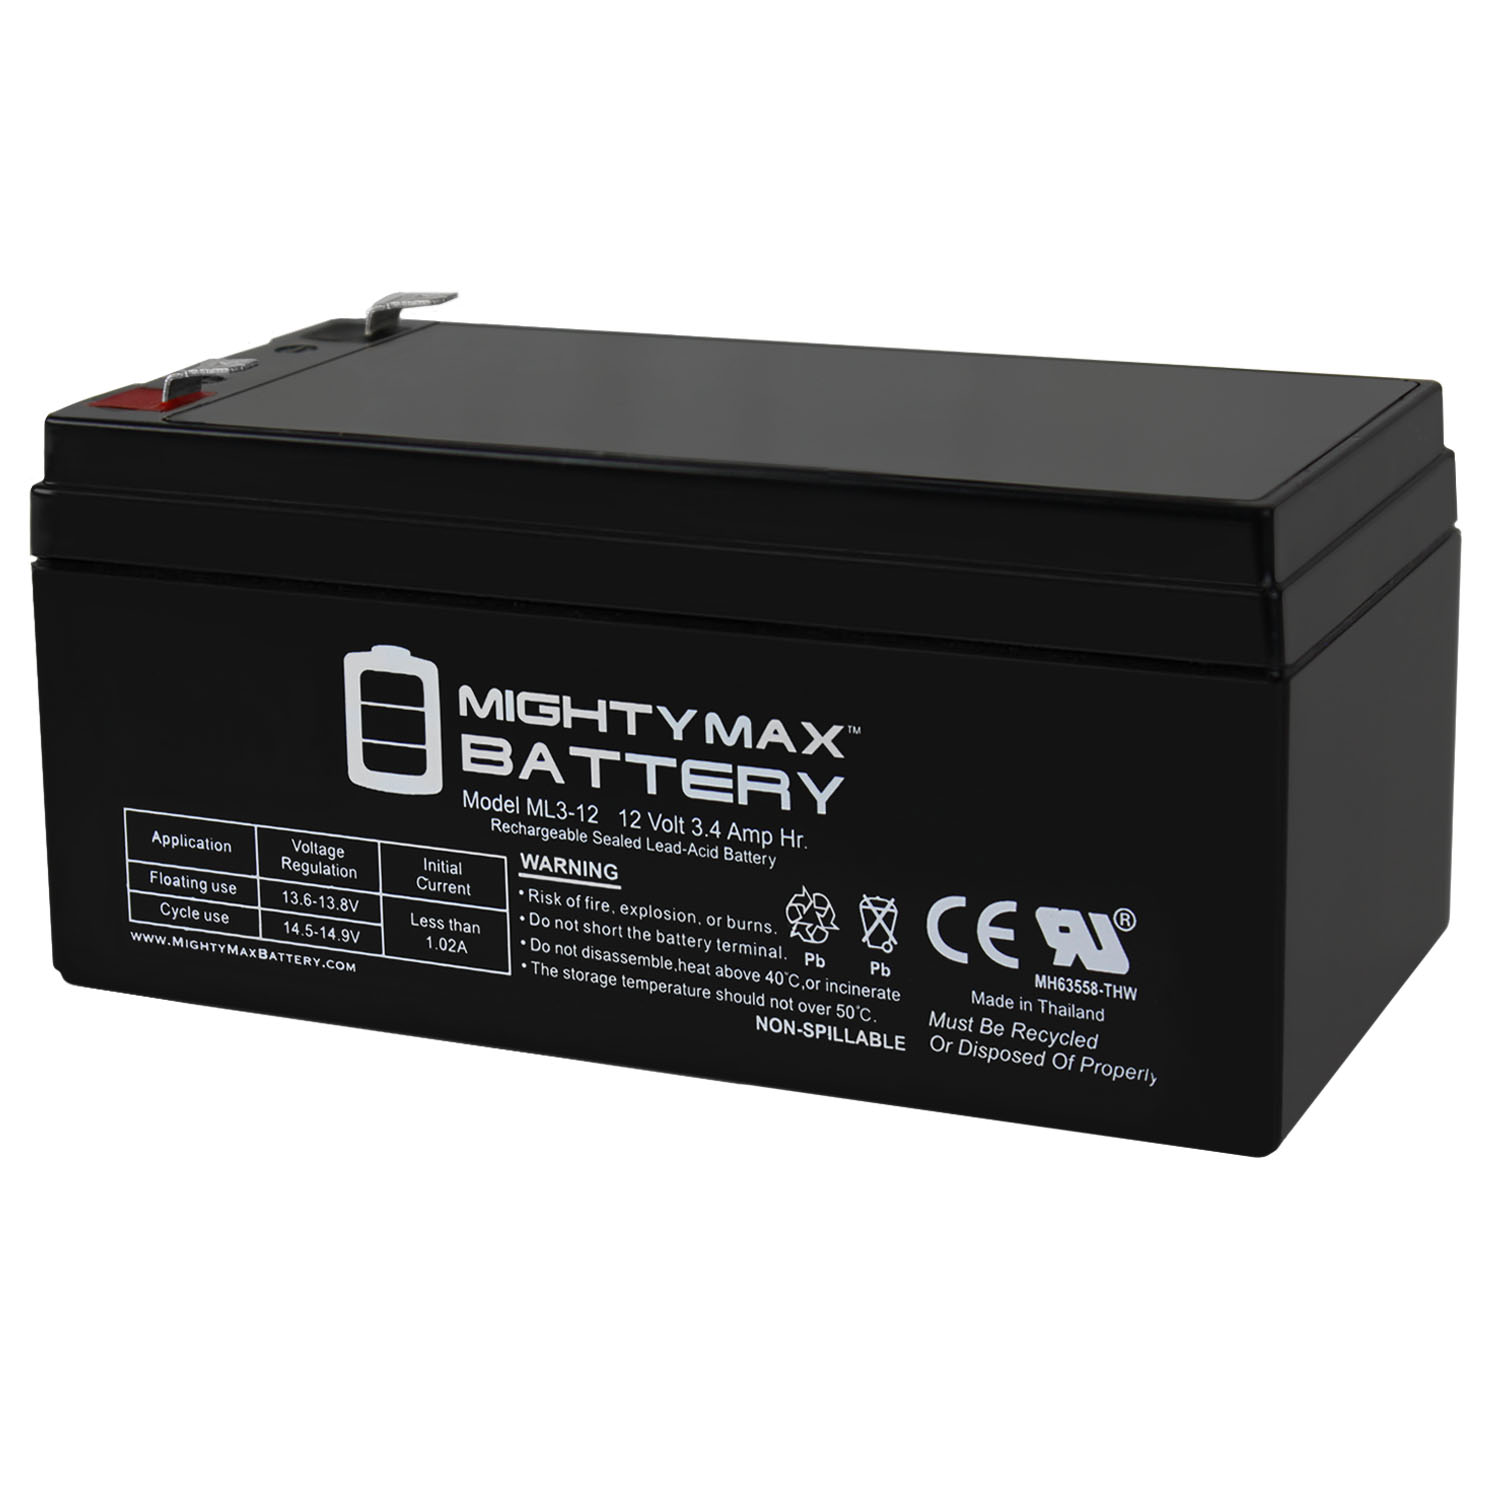 Mighty Max Battery ML3-12 Replacement For Toro Lawn mower # 106-8397 BATTERY-12 VOLT at Sears.com